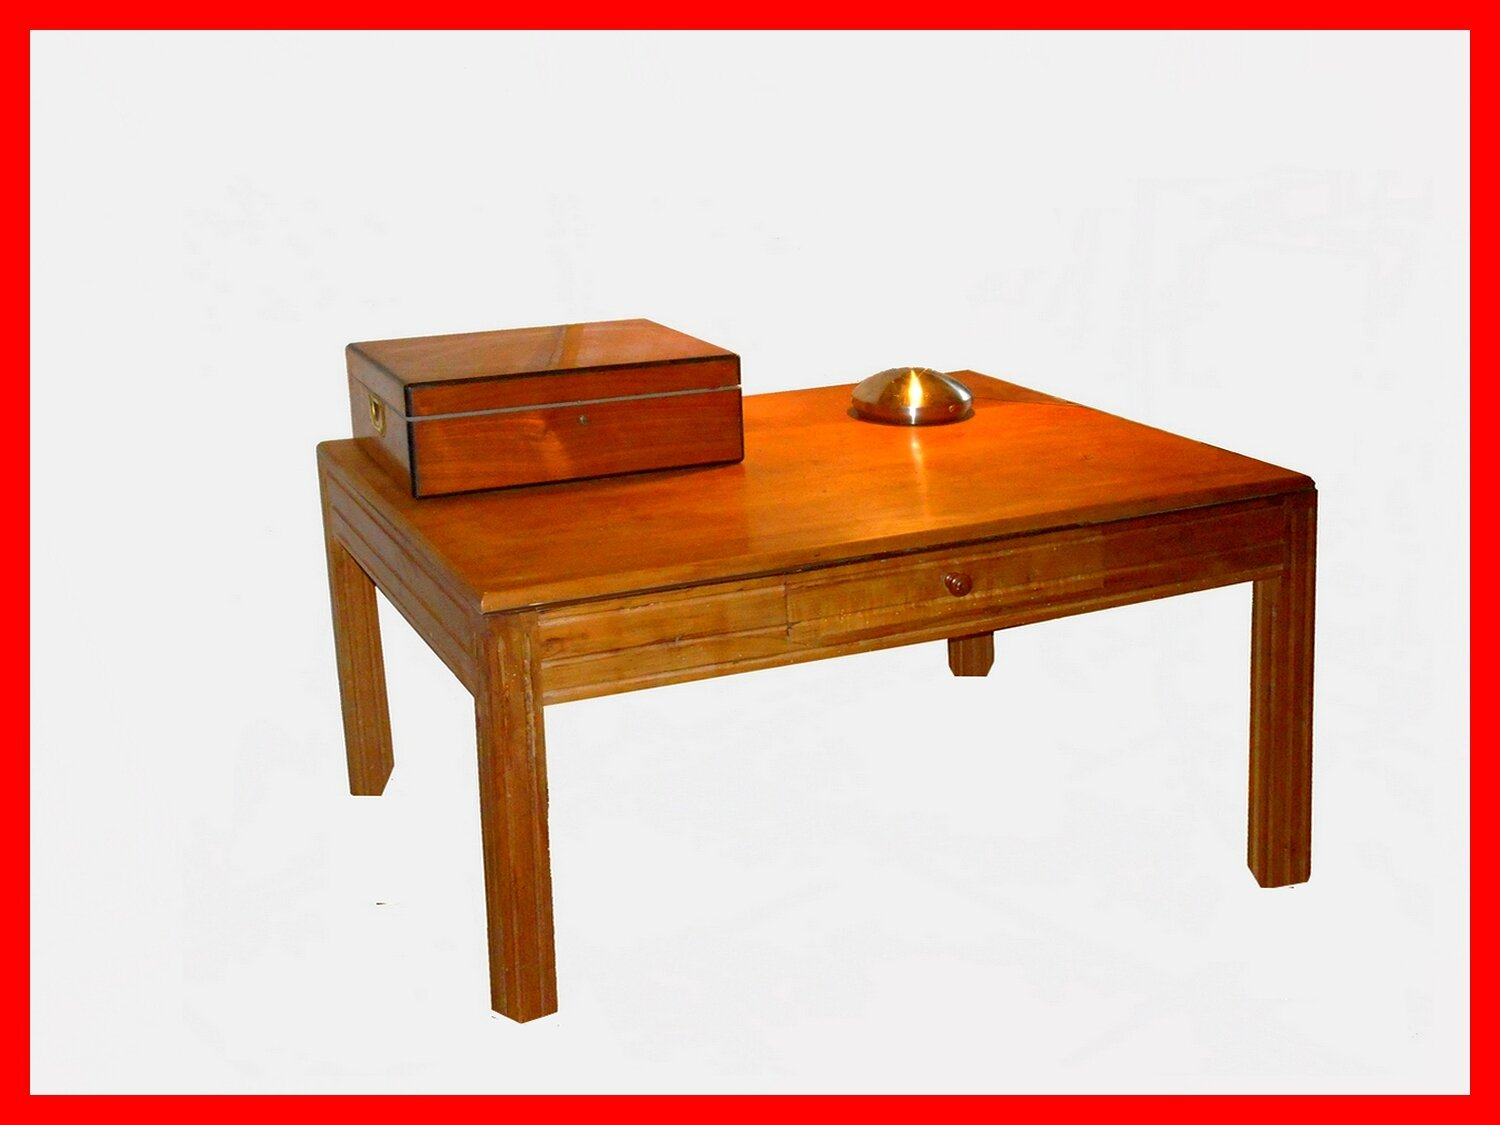 table basse art deco 1920 1930 meubles d co vintage design scandinave. Black Bedroom Furniture Sets. Home Design Ideas